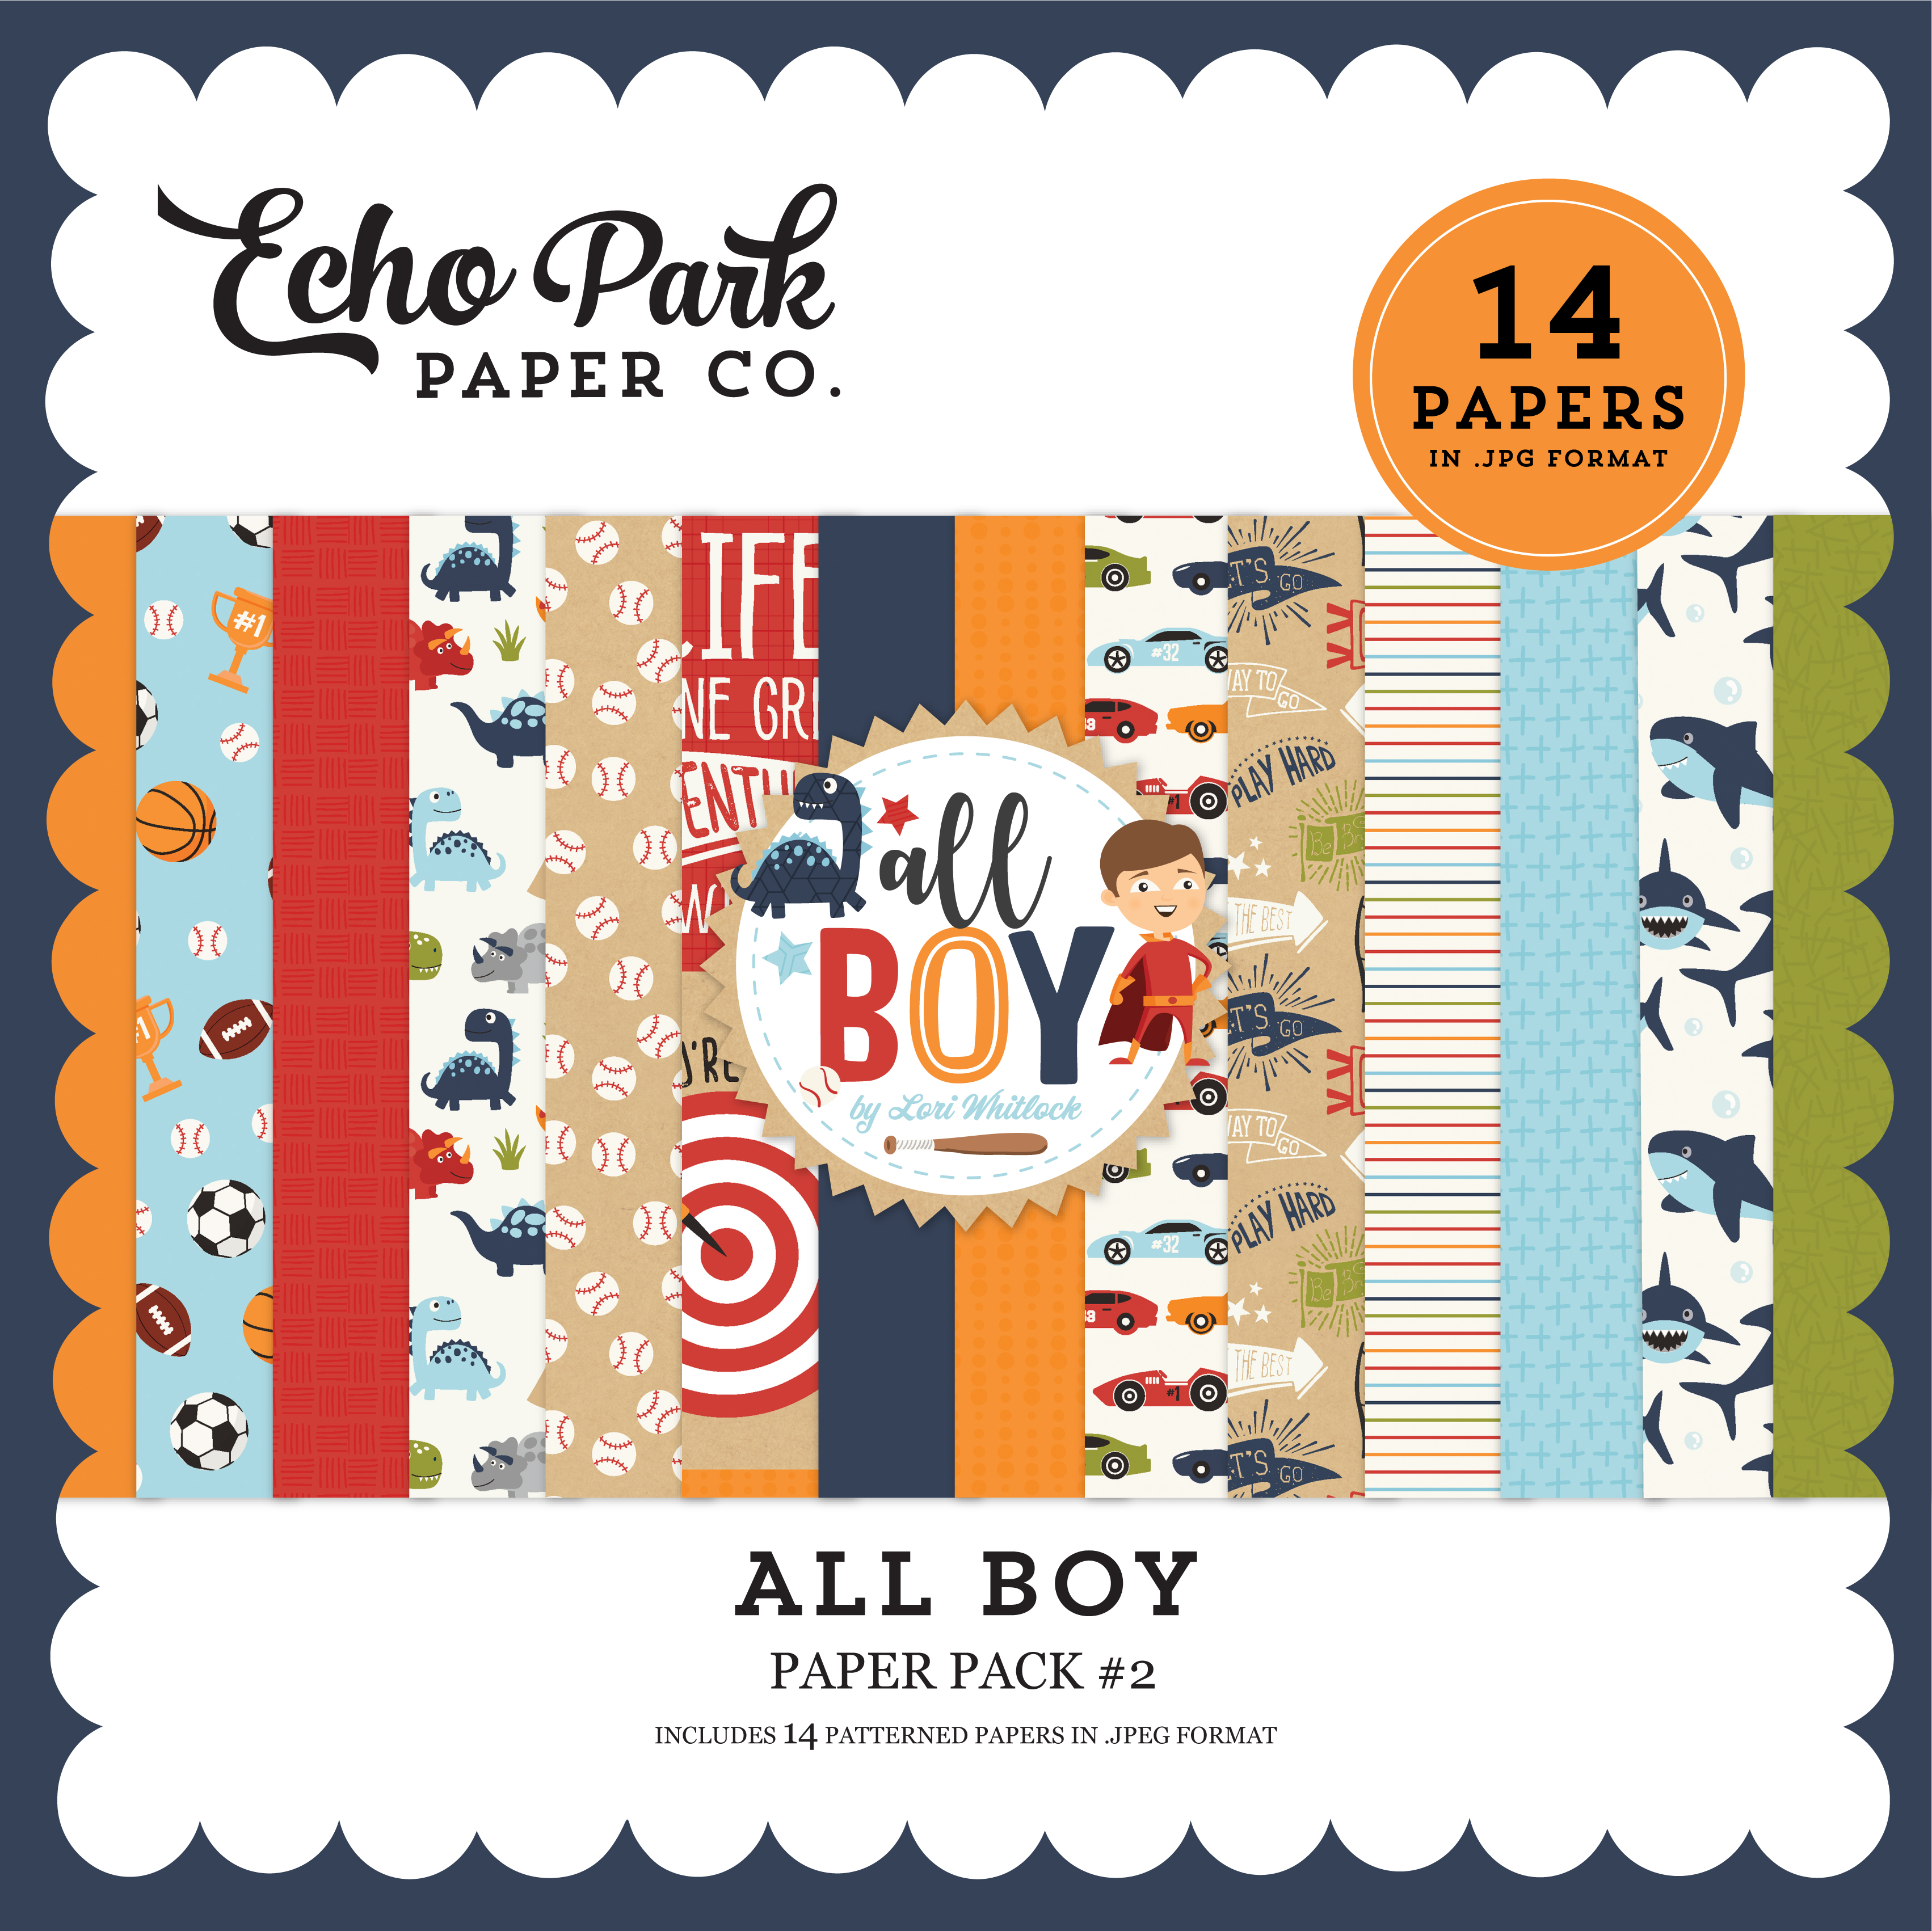 All Boy Paper Pack #2